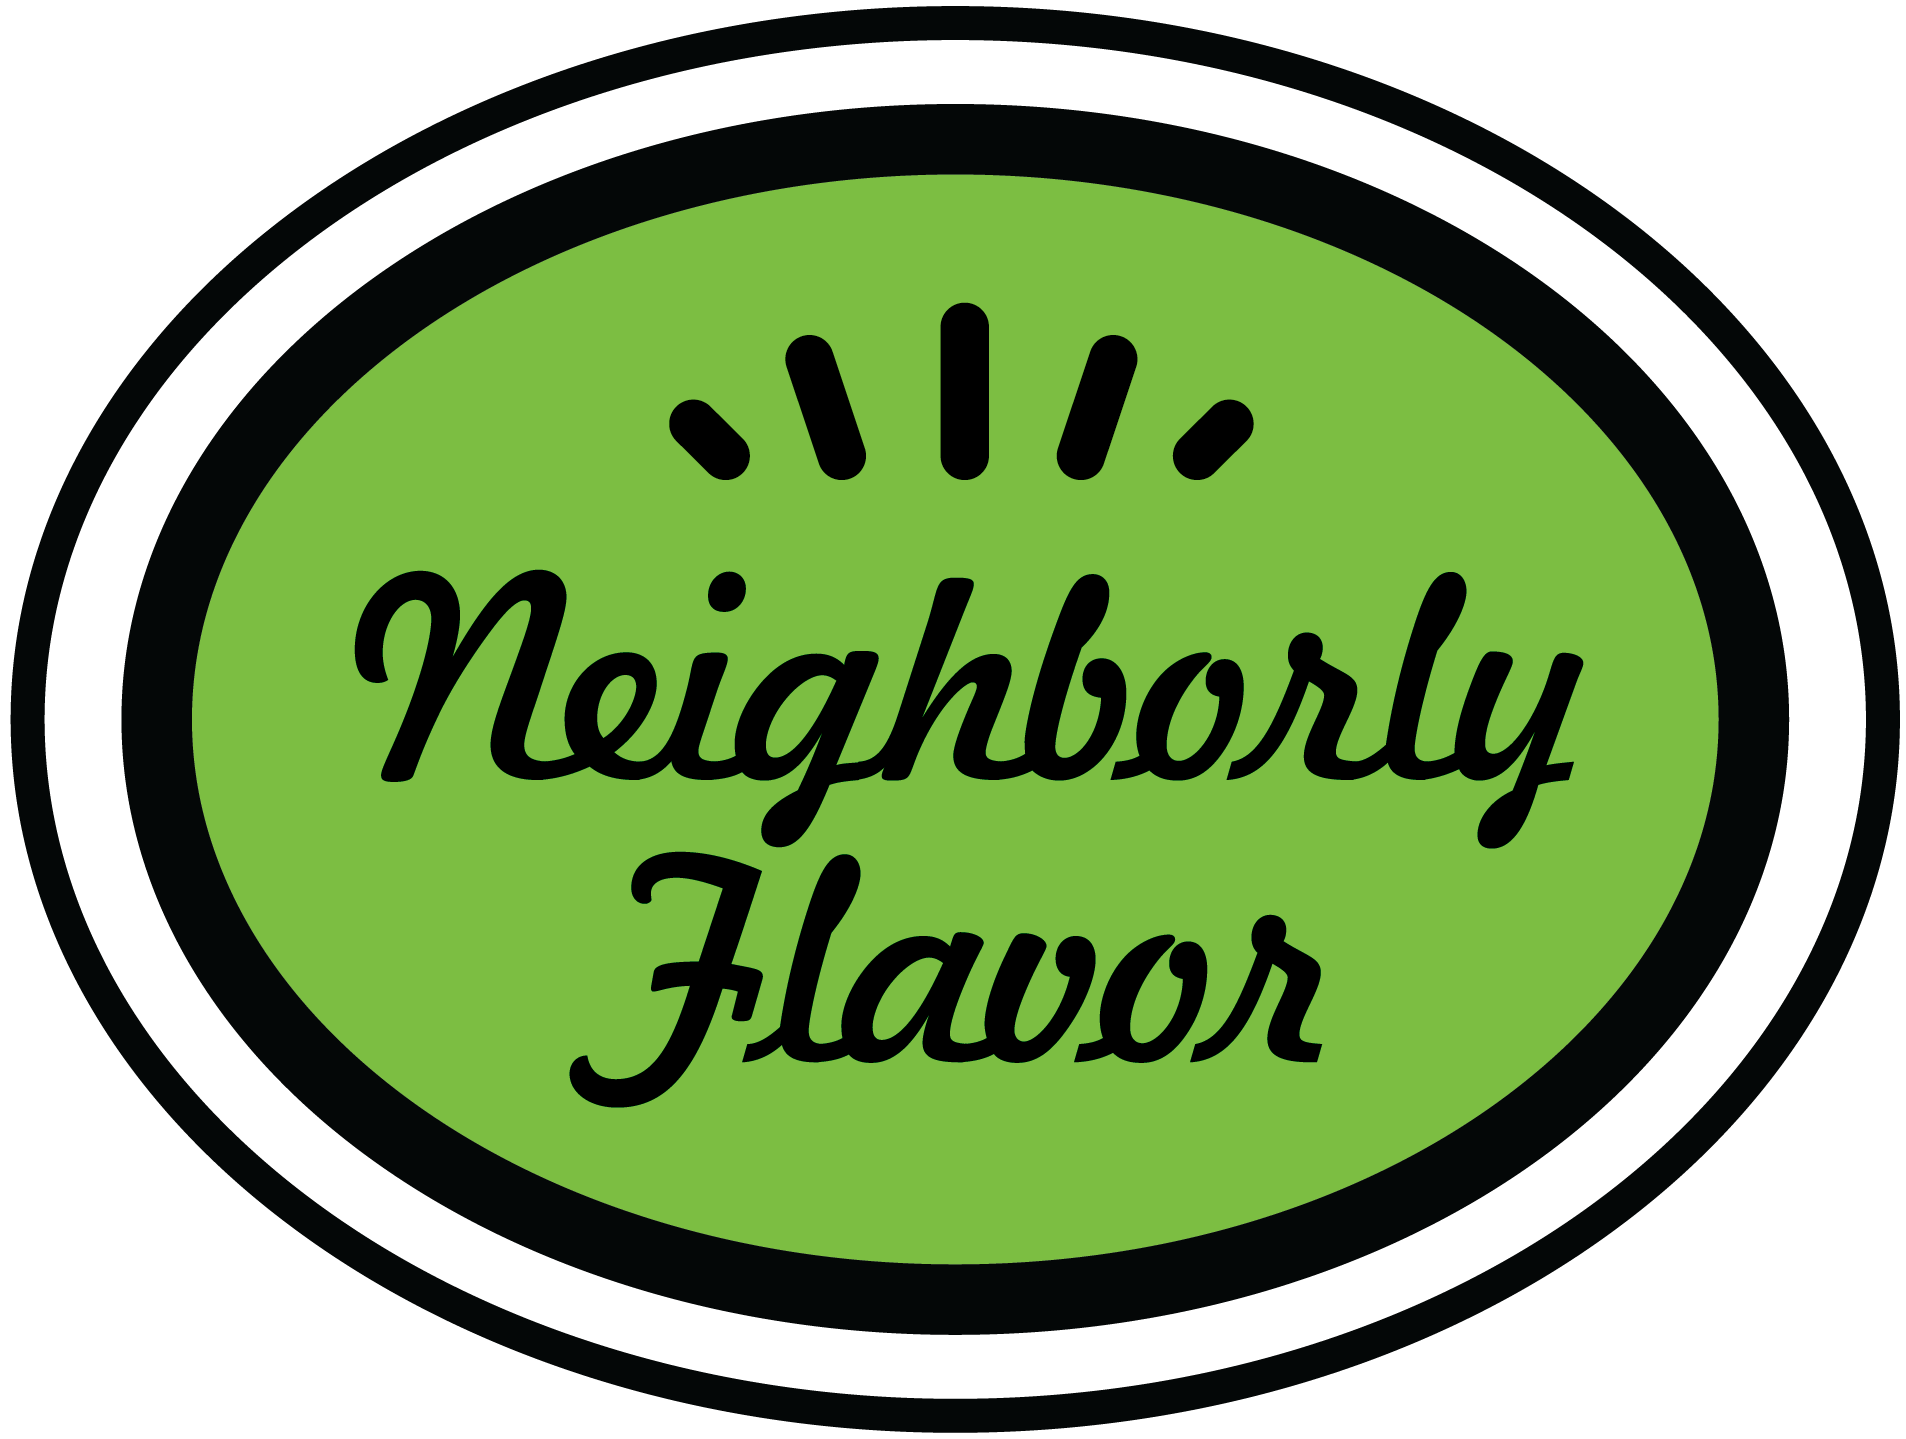 Neighborly Flavor